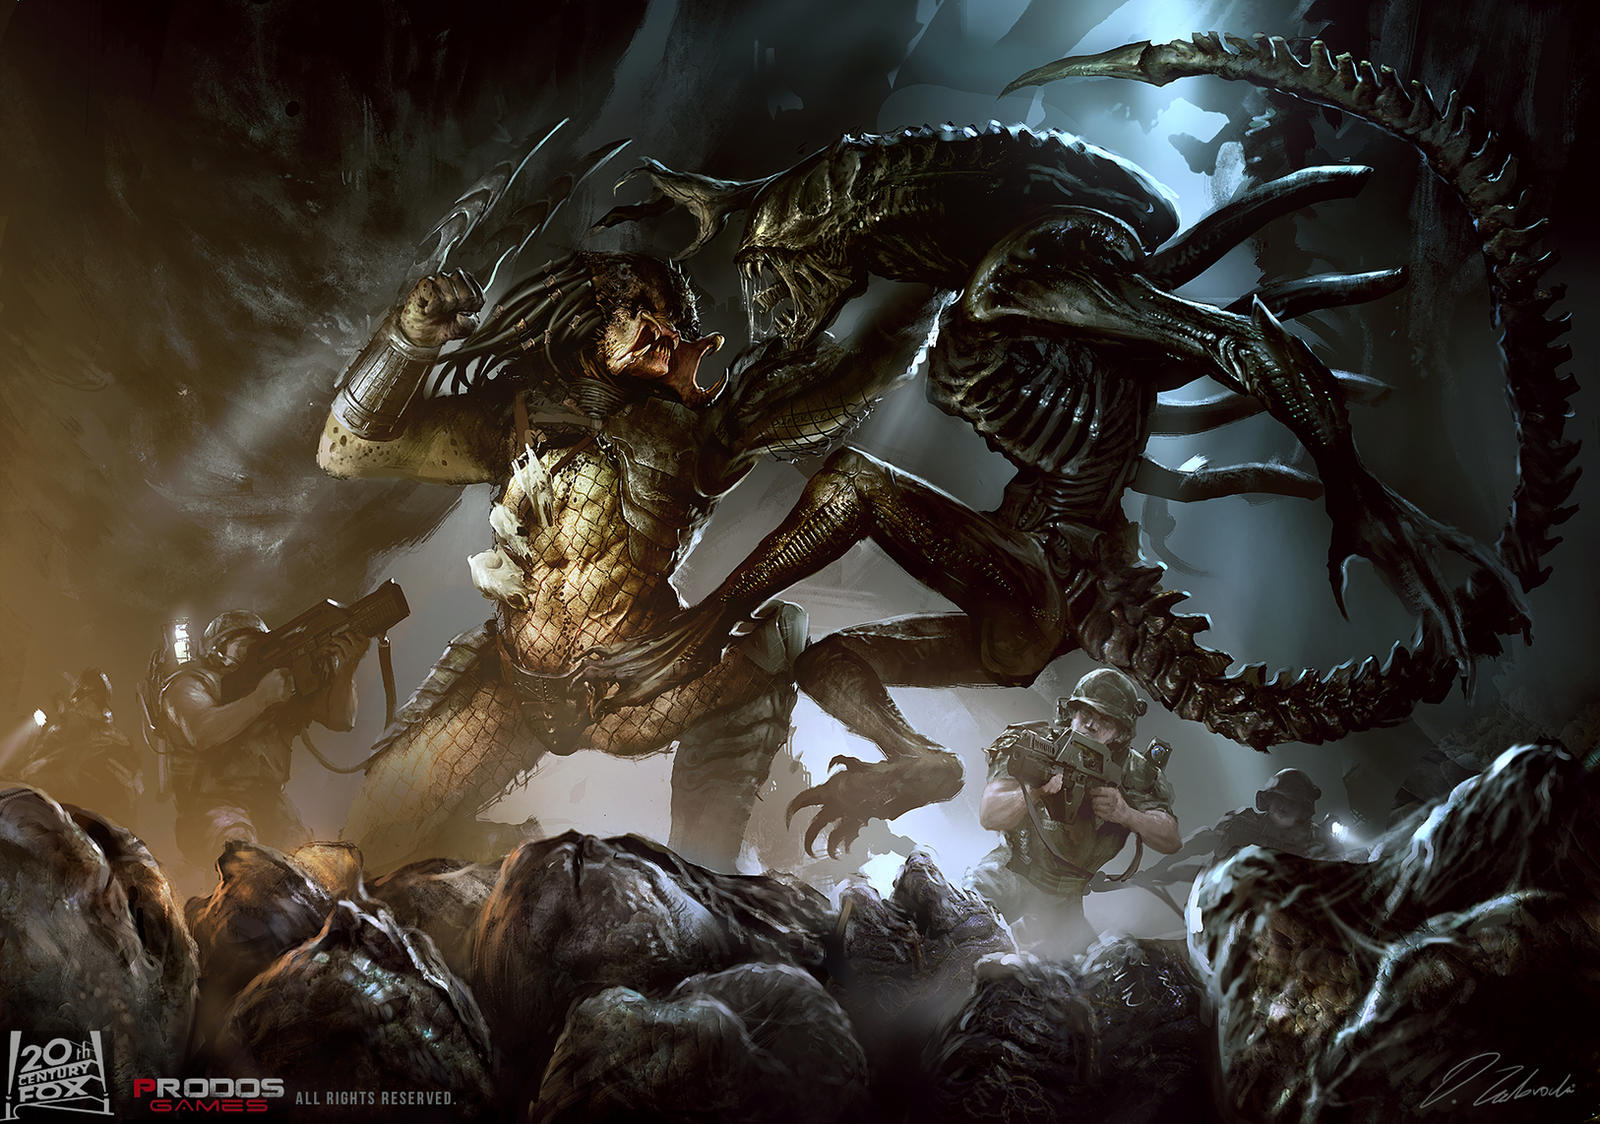 aliens vs predator drawings - photo #2